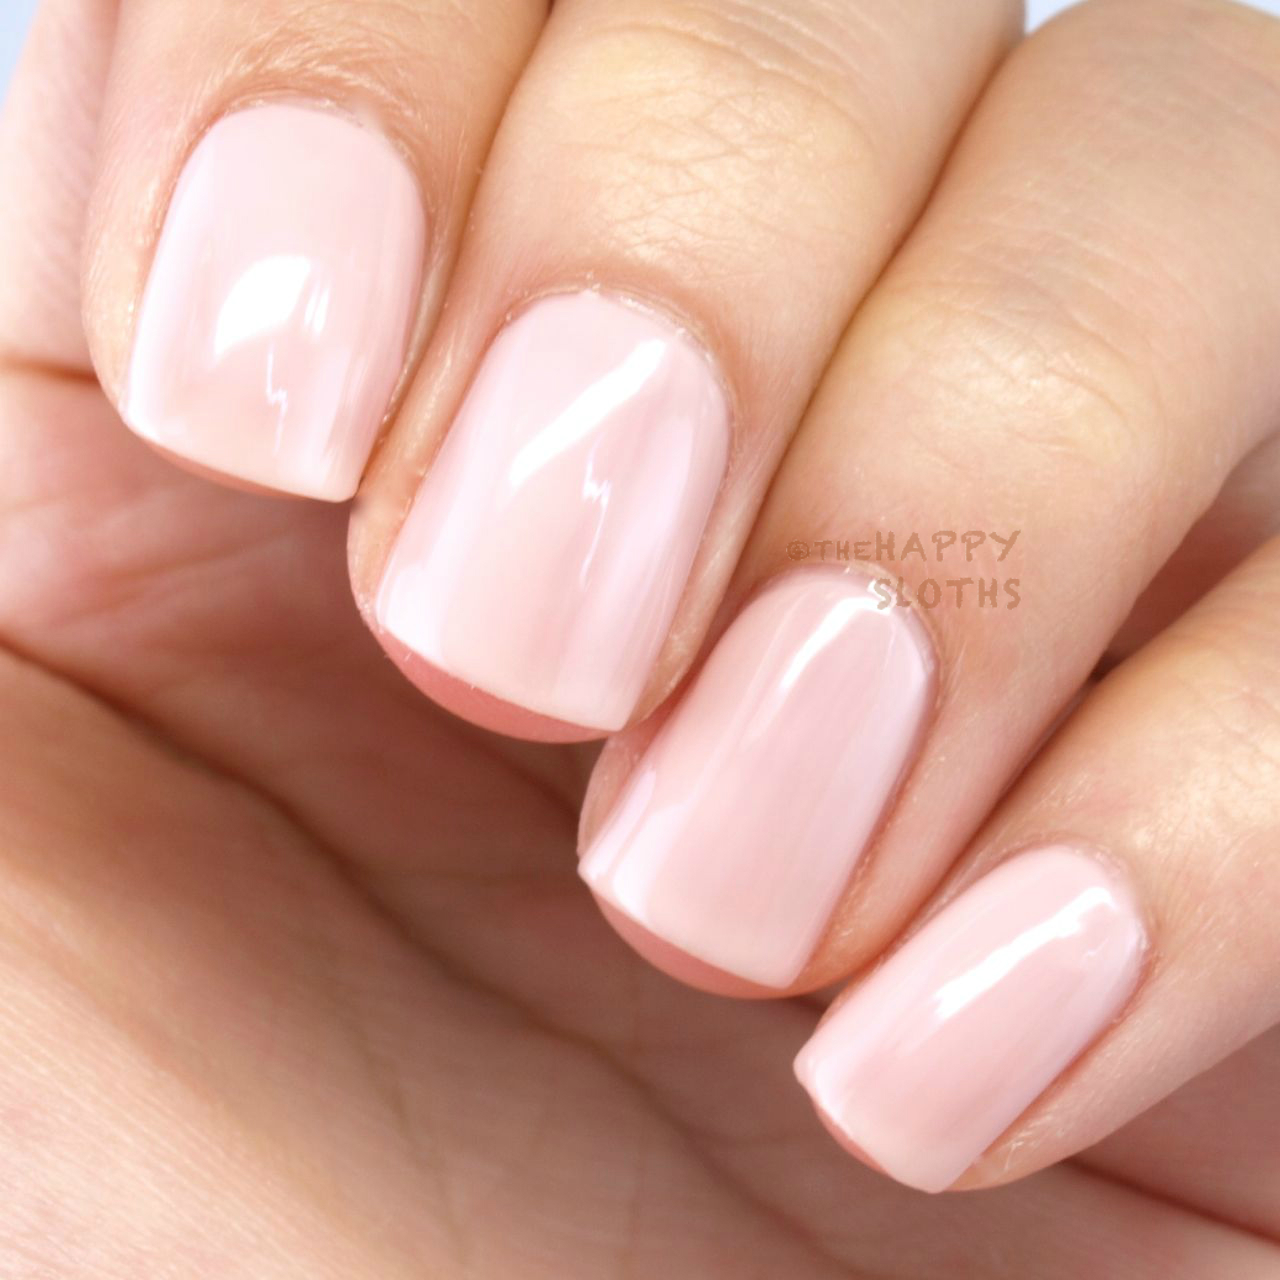 Opi Pink Shimmer Nail Polish: Pink Beige Silver Nude